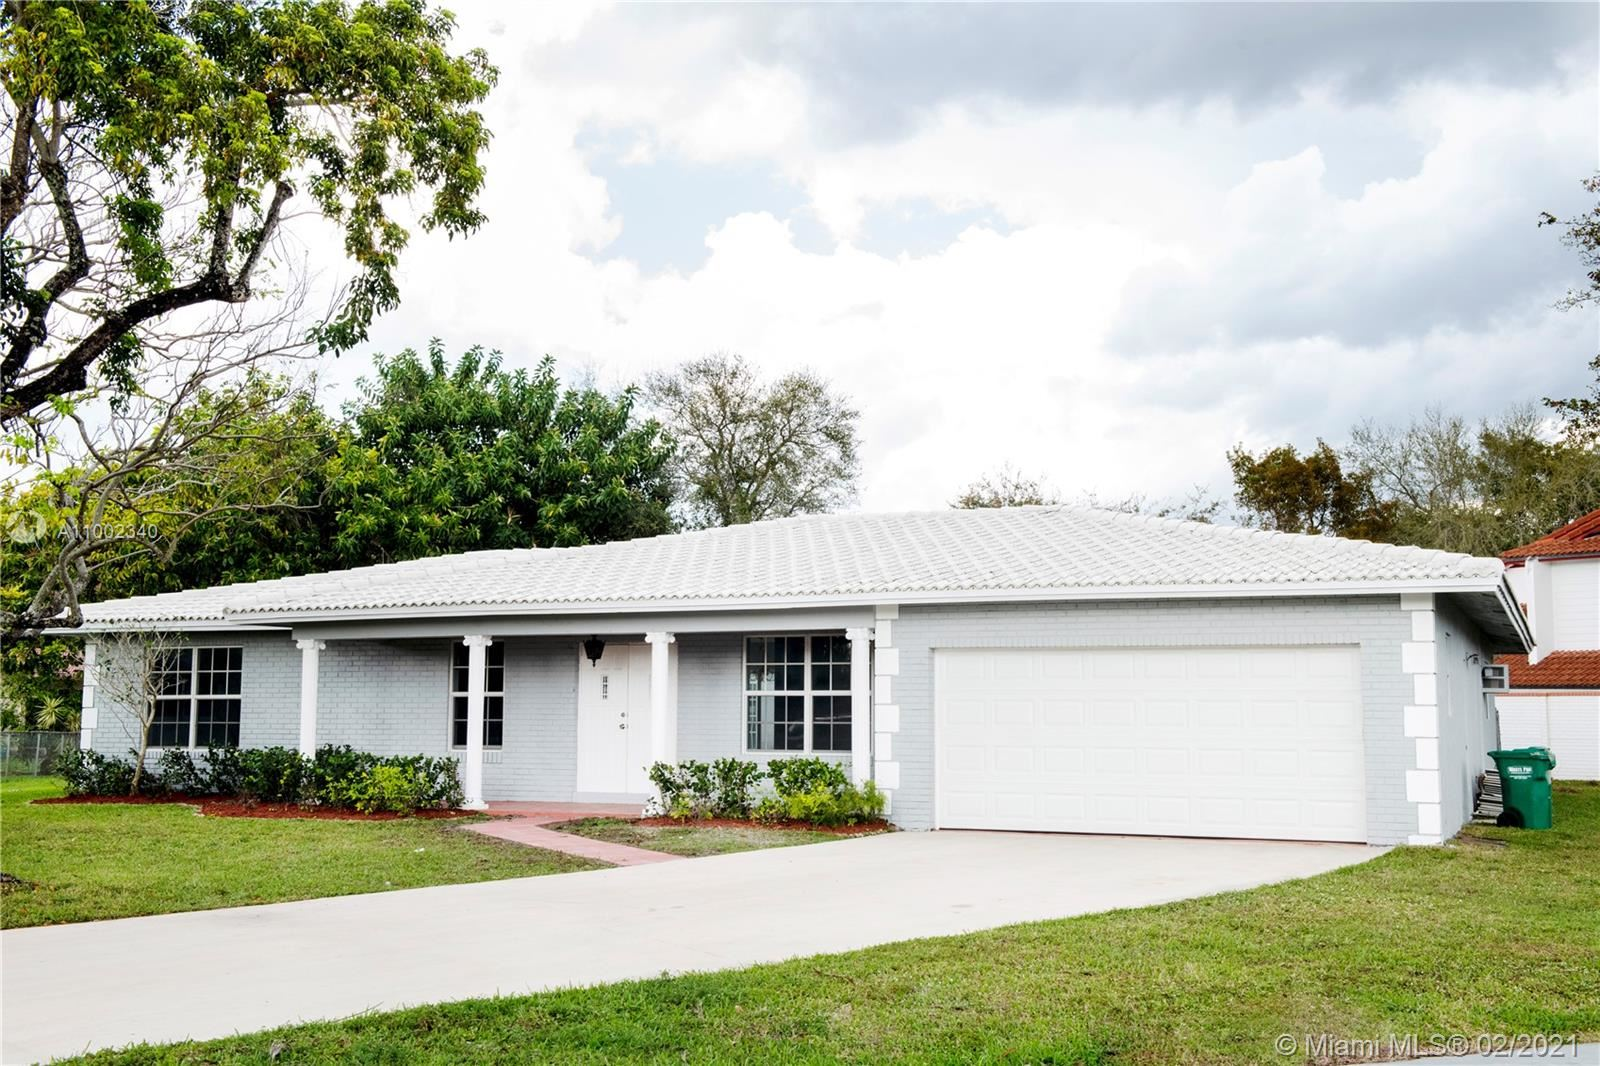 9011 NW 23rd St, Coral Springs, FL 33065 - #: A11002340